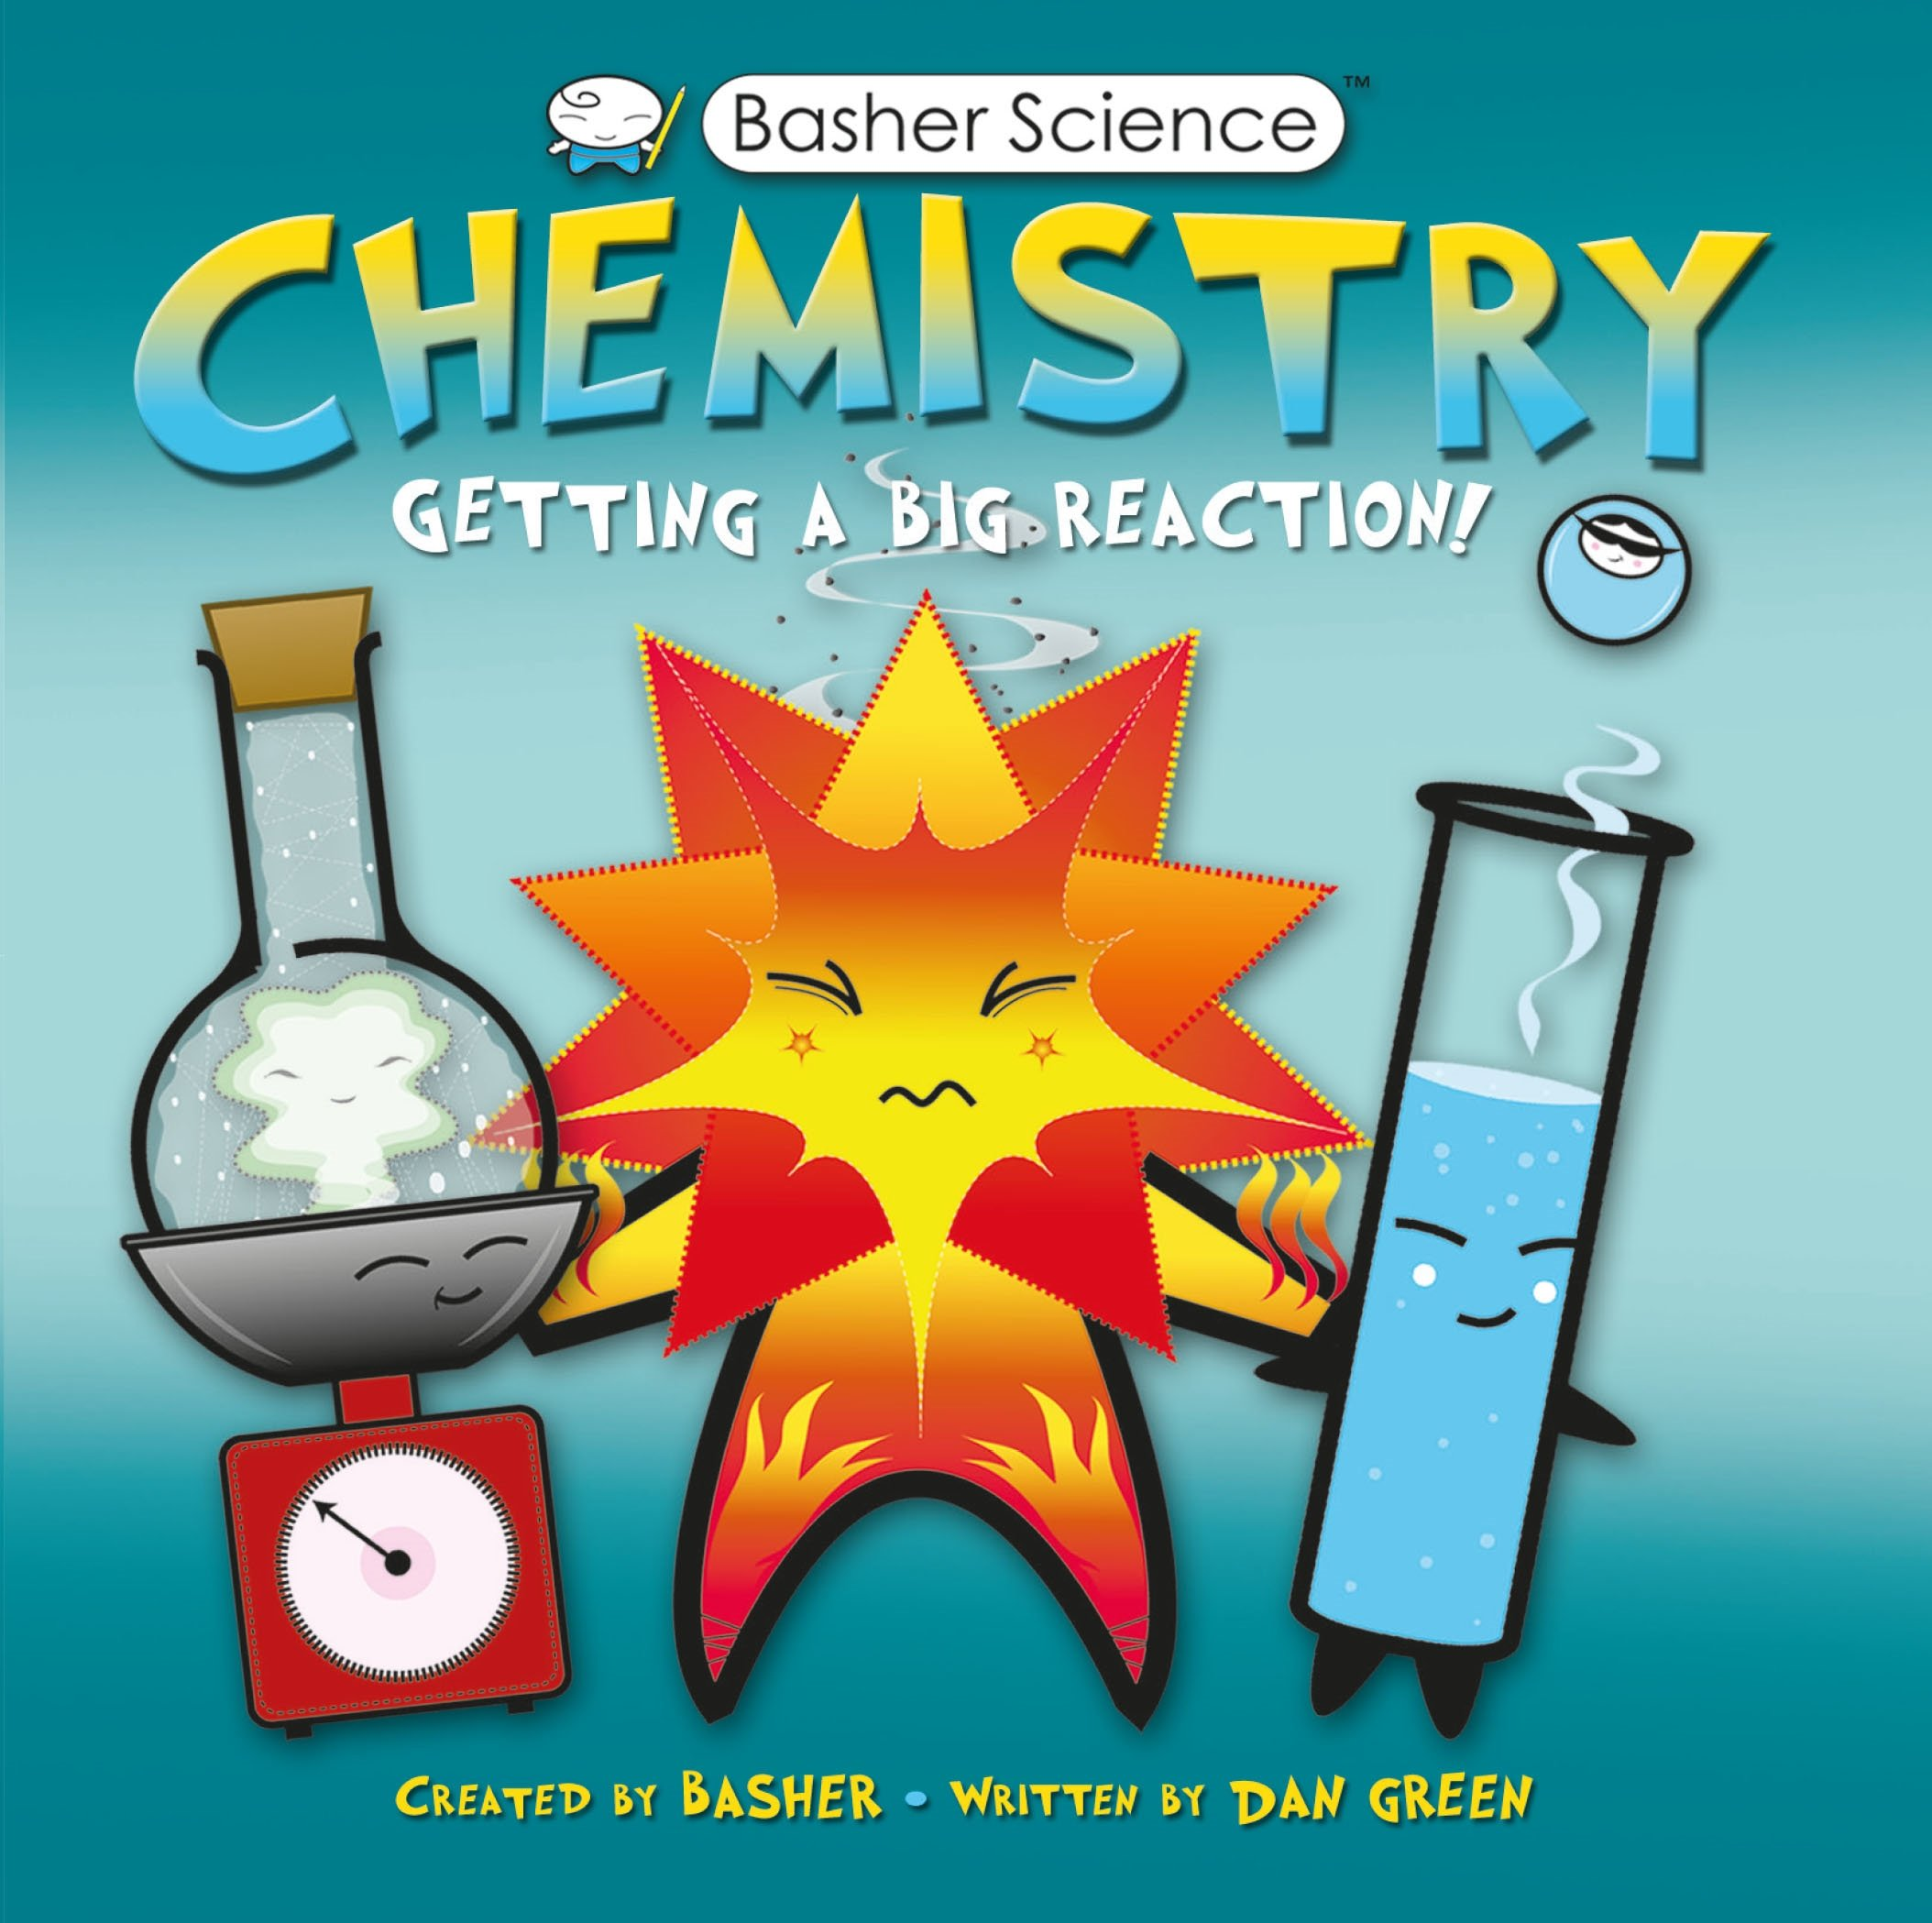 Basher science chemistry getting a big reaction simon basher basher science chemistry getting a big reaction simon basher dan green 9780753464137 amazon books gamestrikefo Gallery